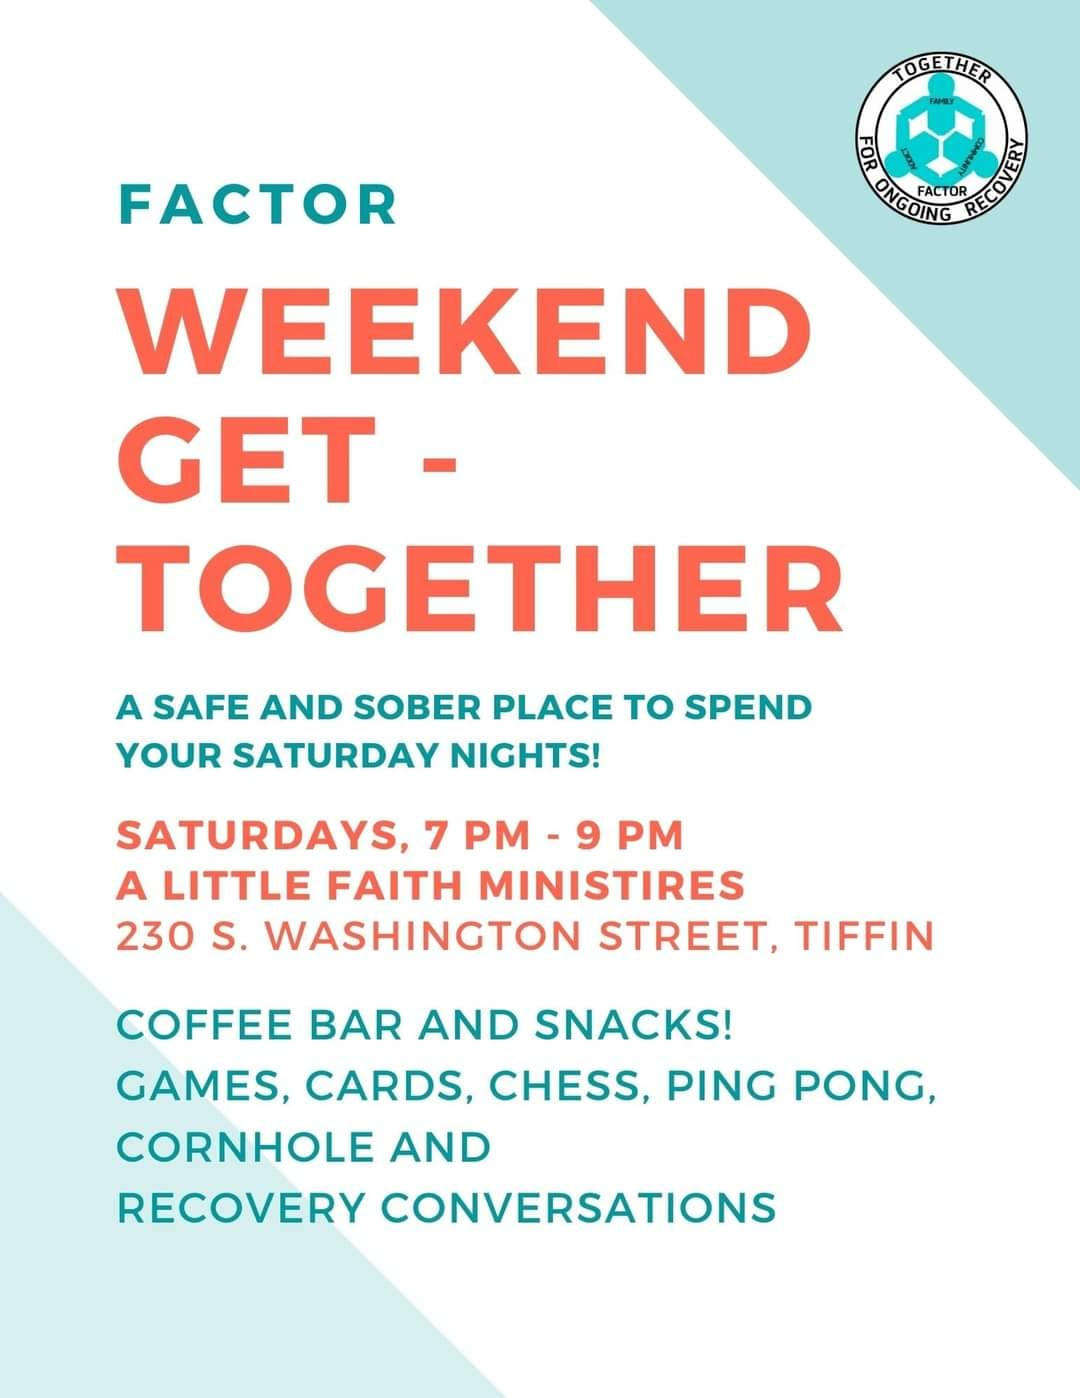 Sober Saturday - Weekend Get Together @ A Little Faith Ministries | Tiffin | Ohio | United States